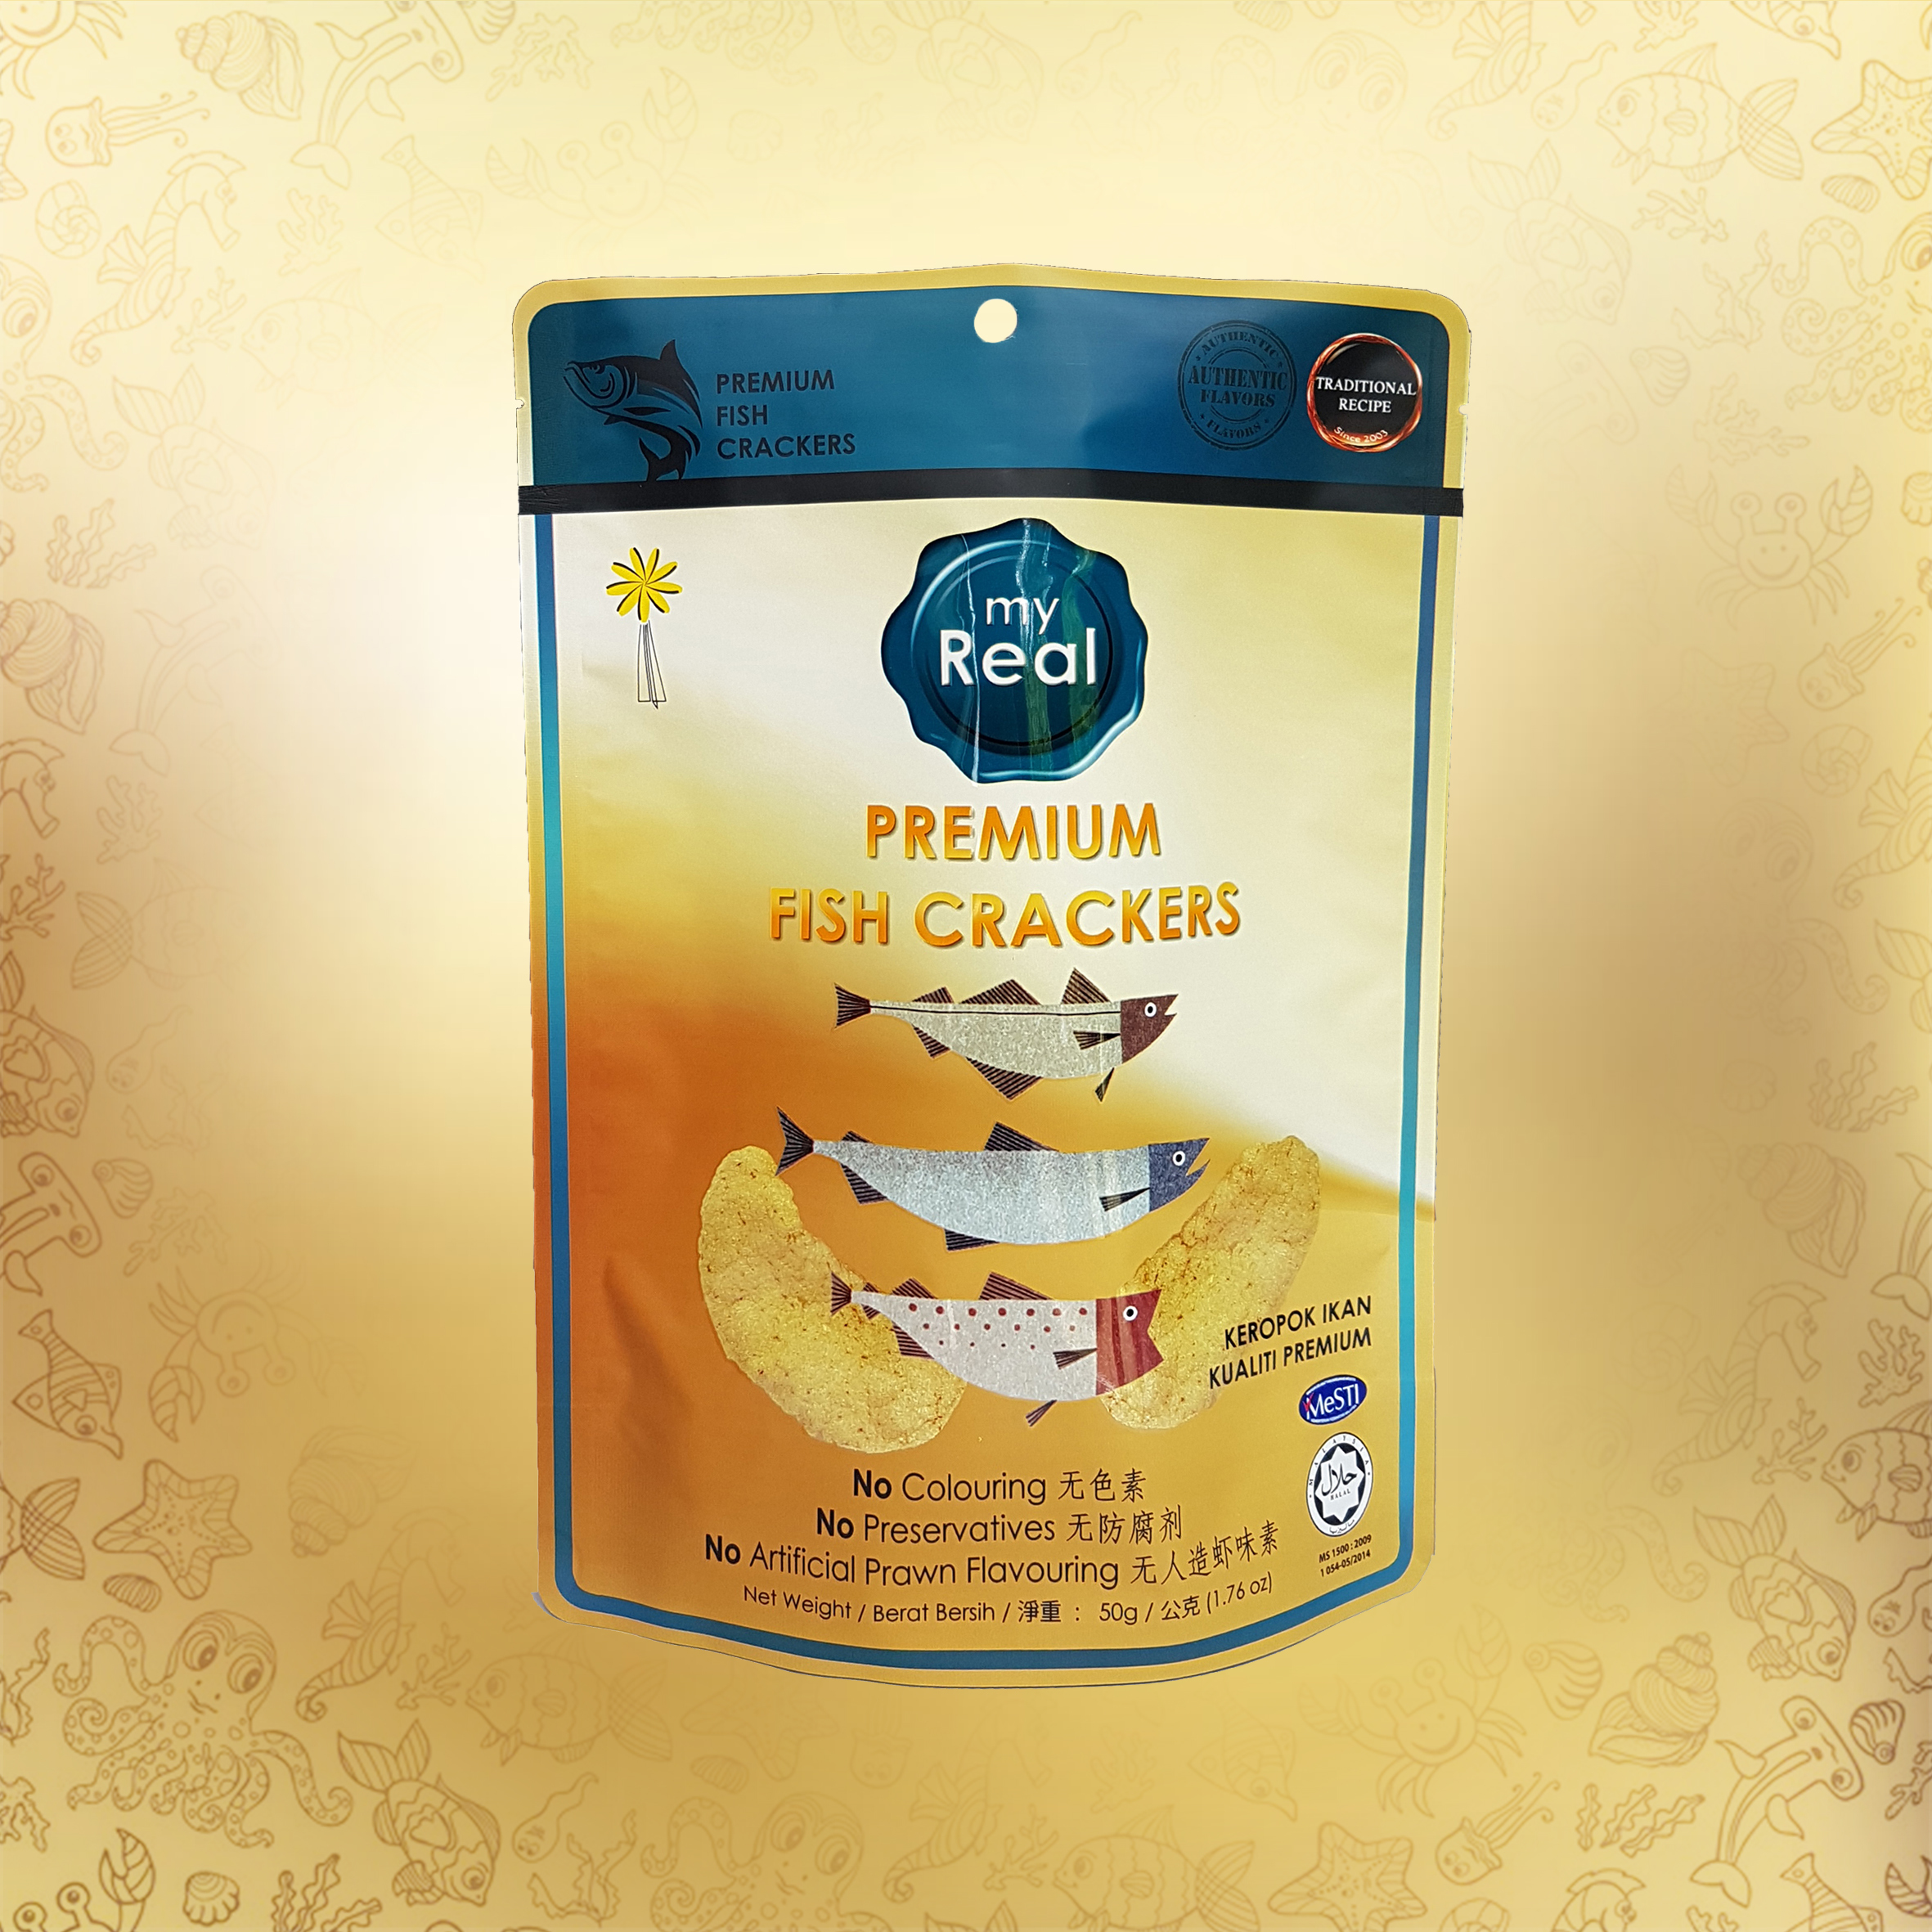 myReal FIsh Crackers Golden Front.jpg